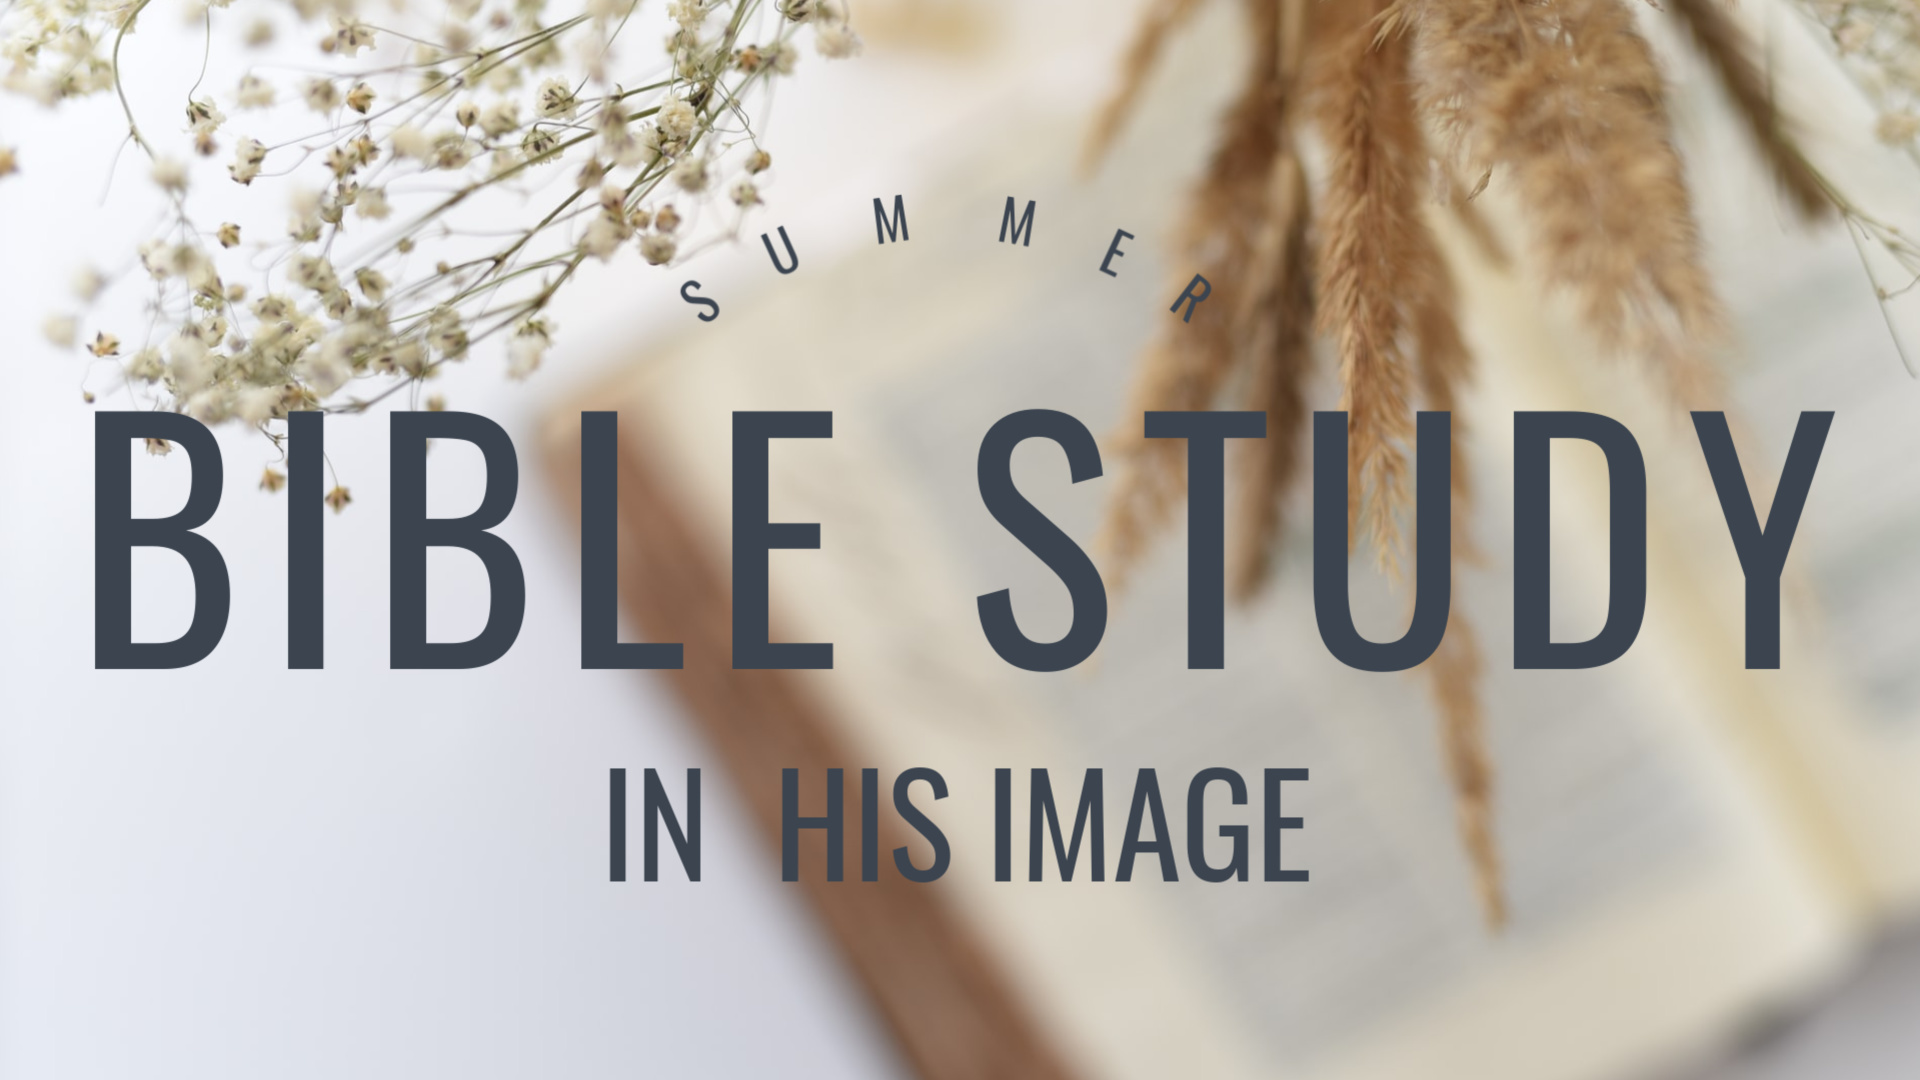 Summer Study In His Image 1920 x 1080  image